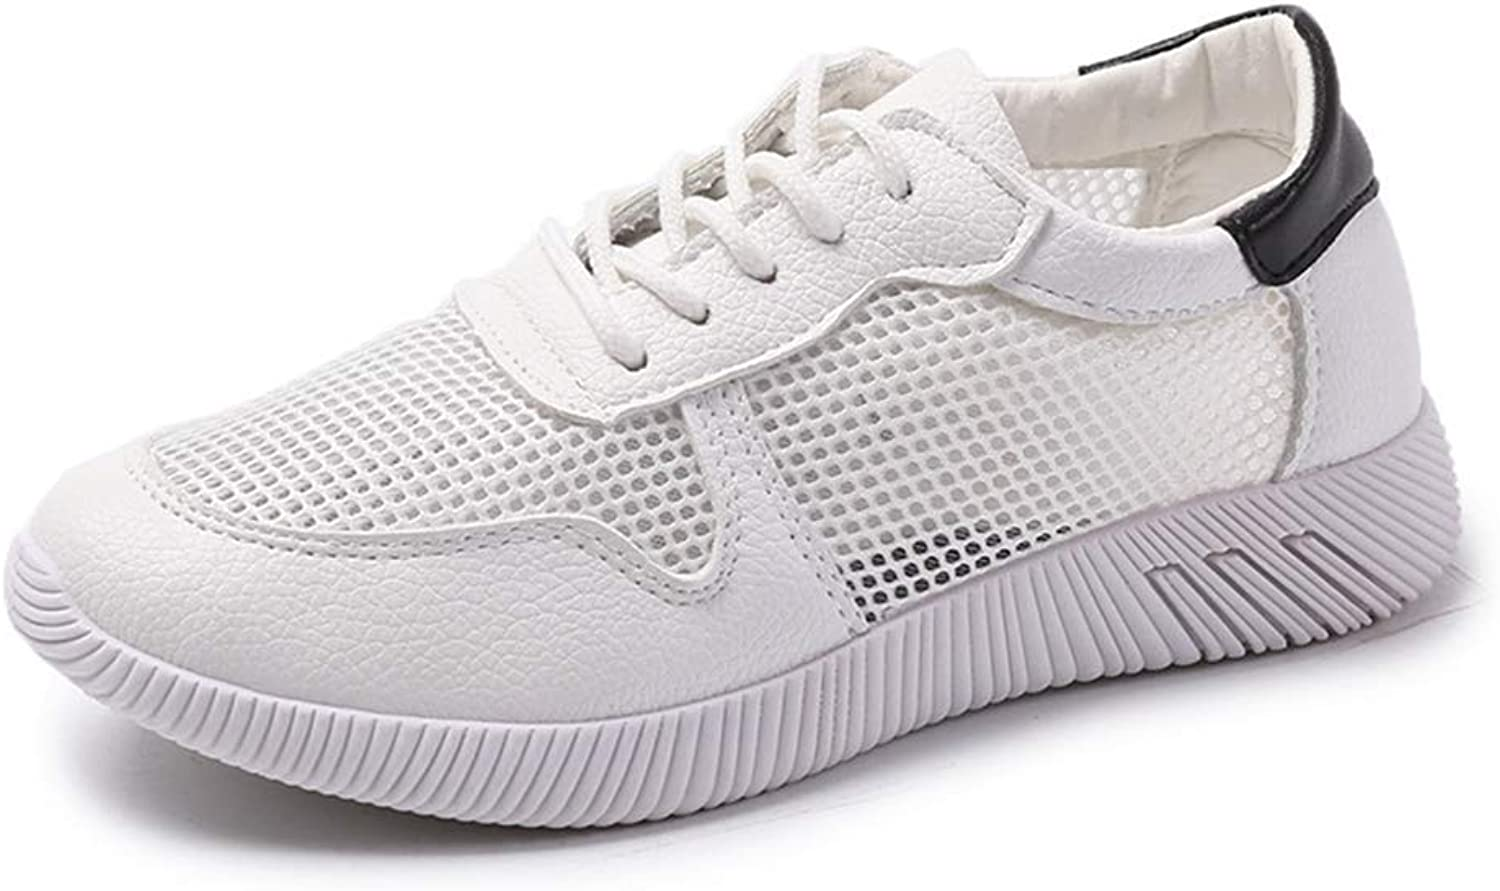 Gedigits Female Spring Wedges White shoes Women Platform Casual shoes Green 5.5 M US